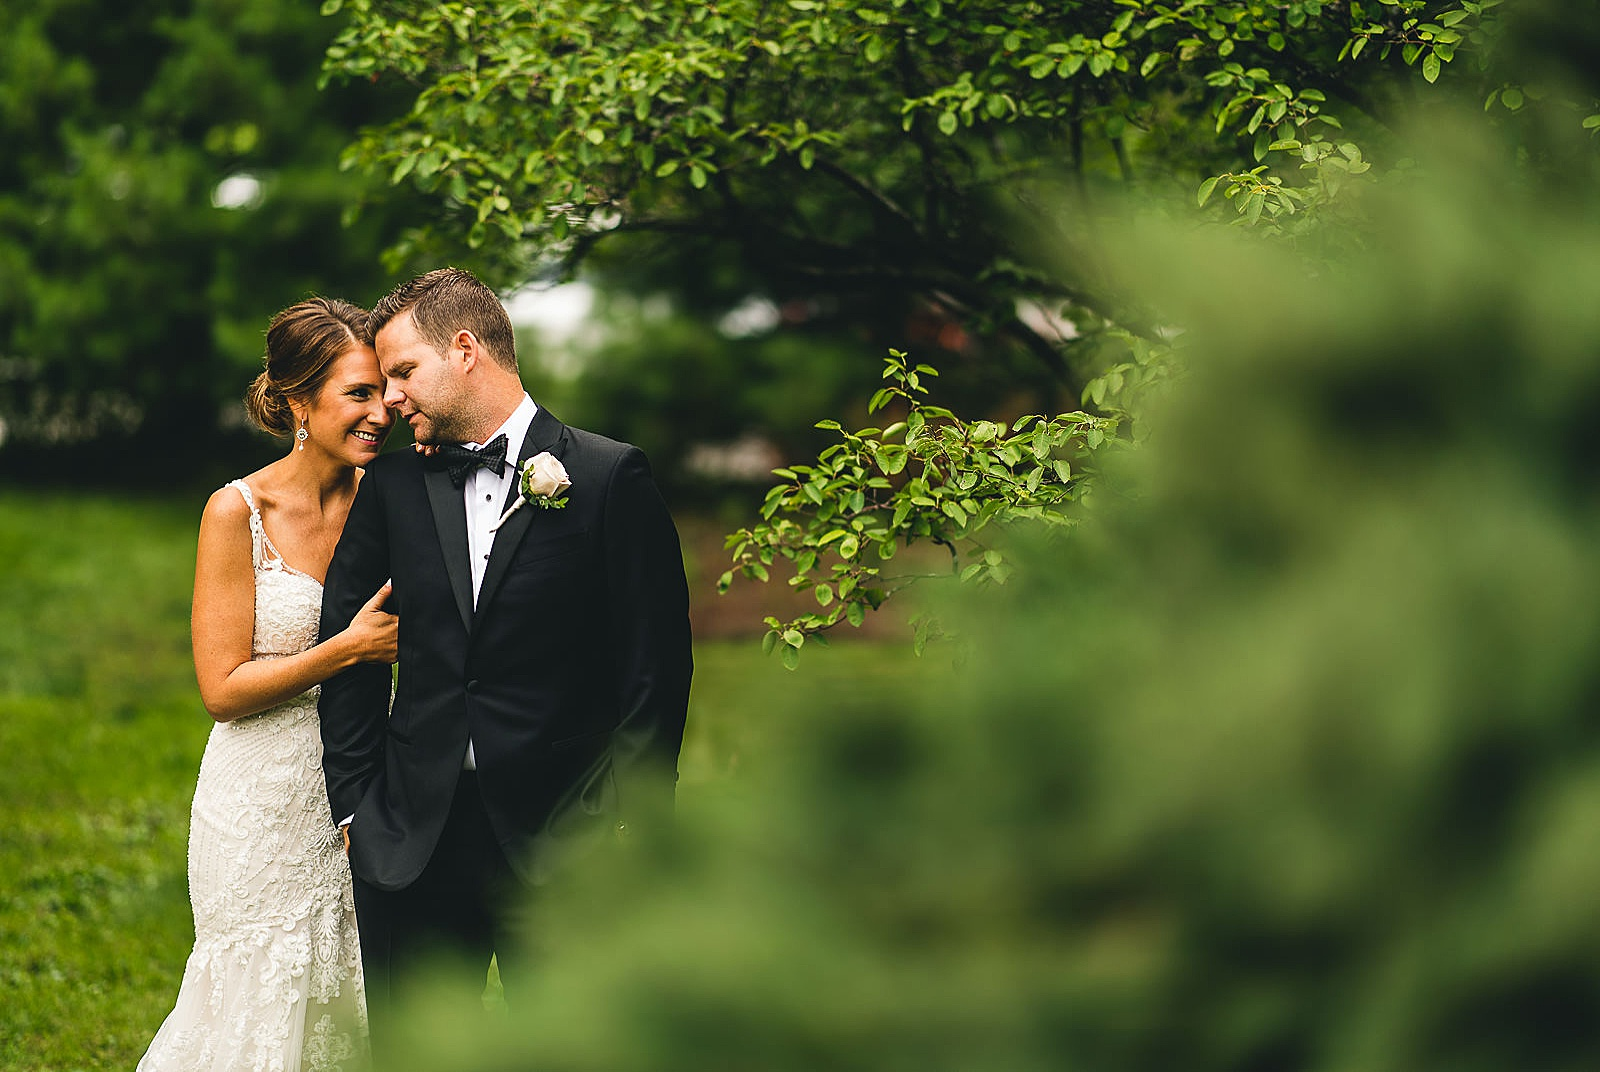 22 best wedding pics from medinah country club - Medinah Country Club Wedding Photos // Courtney + Tim